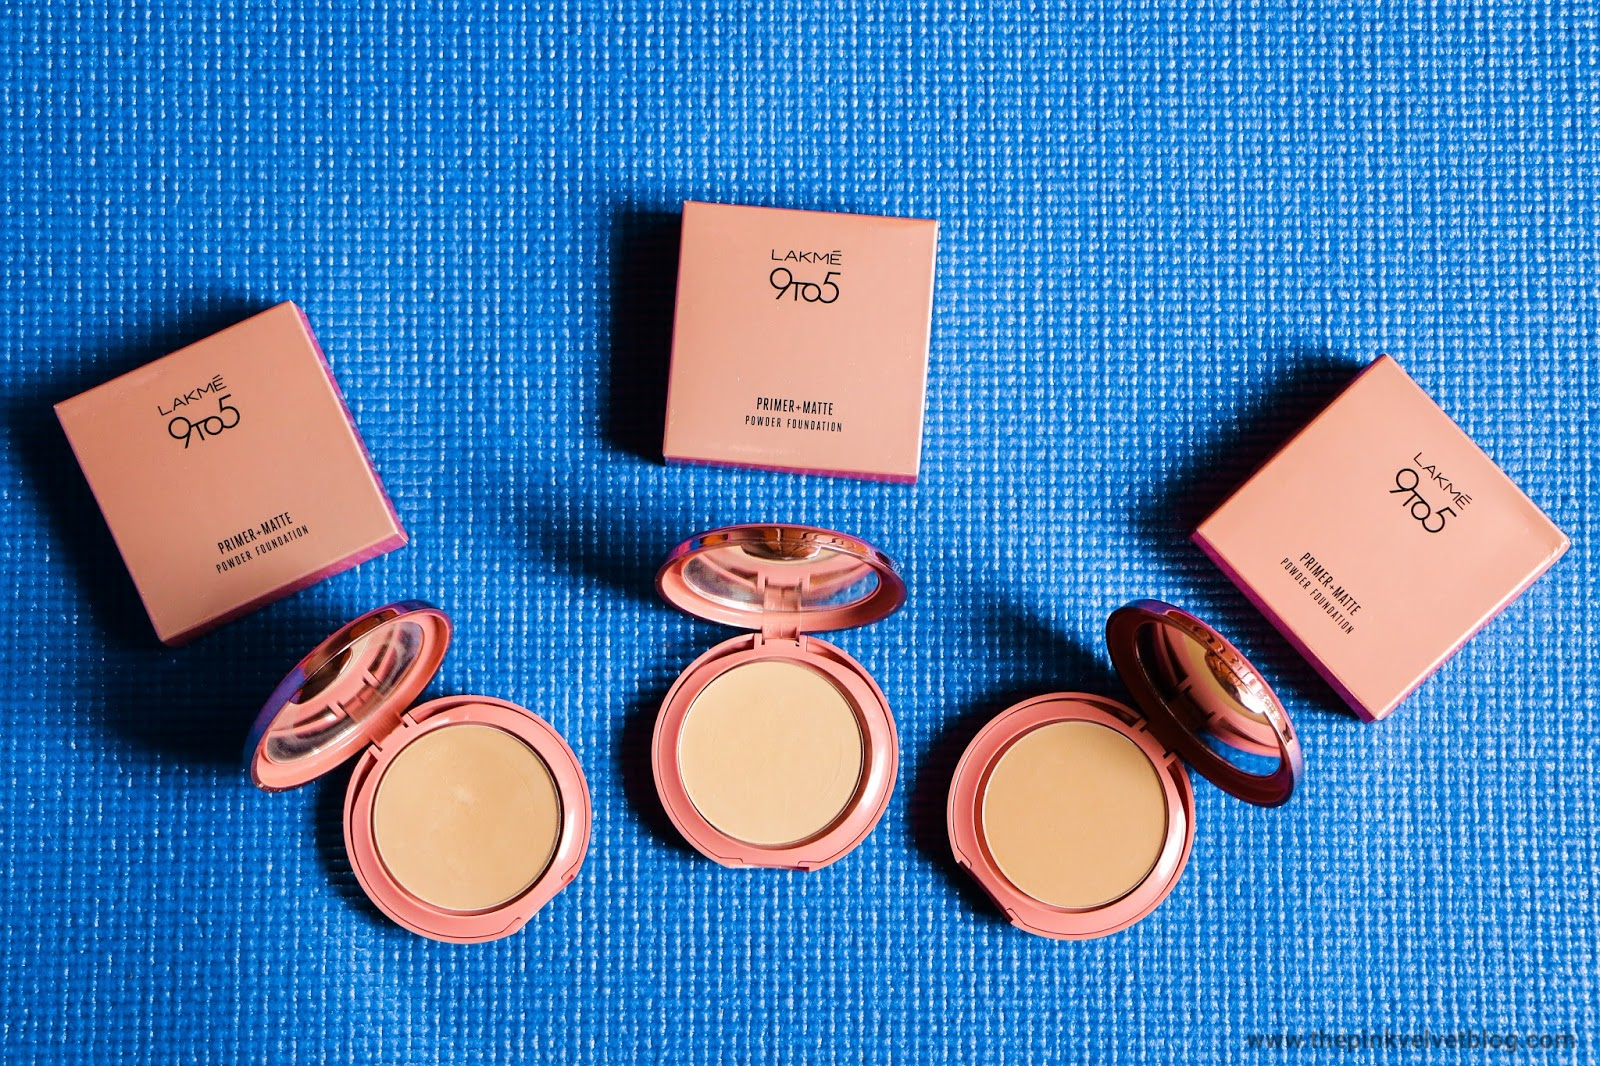 Lakme 9 to 5 Primer + Matte Powder Foundation Compact